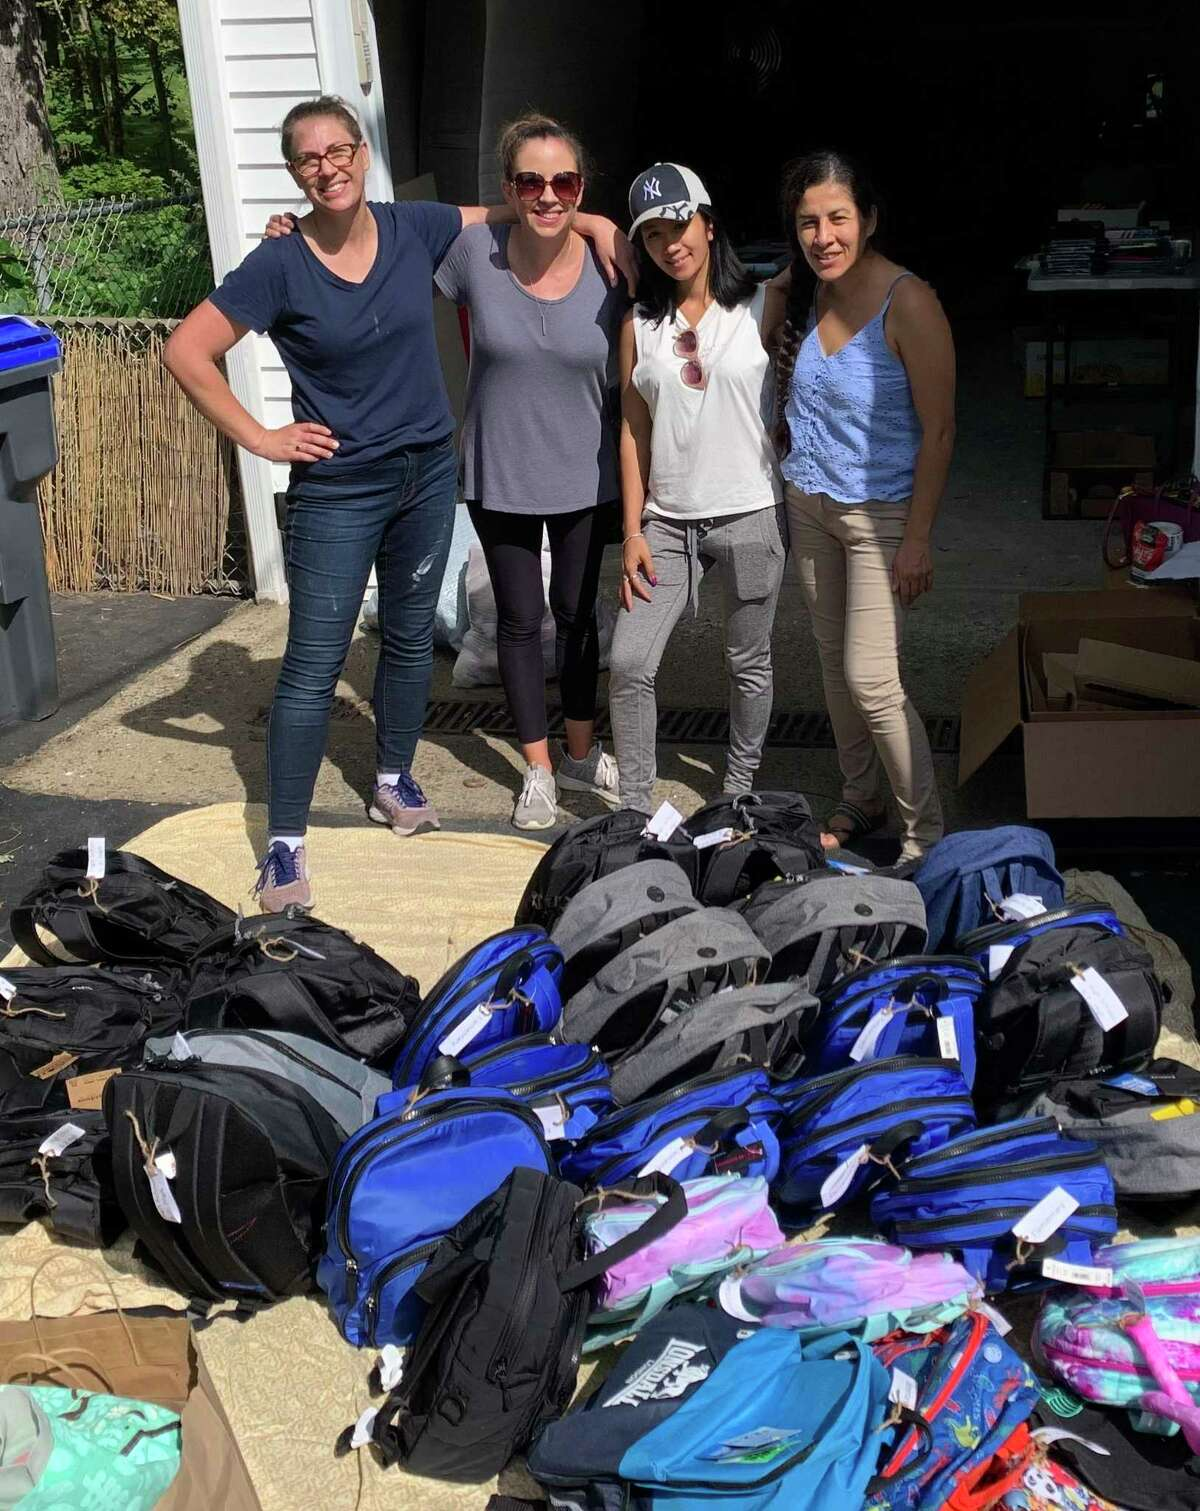 From left - Heidi Leigh Hanson, Heather Miller, Tara Figueroa and Jacqueline Levin are among the local individuals who have taken personal action to help resettle up to 300 Afghan families.